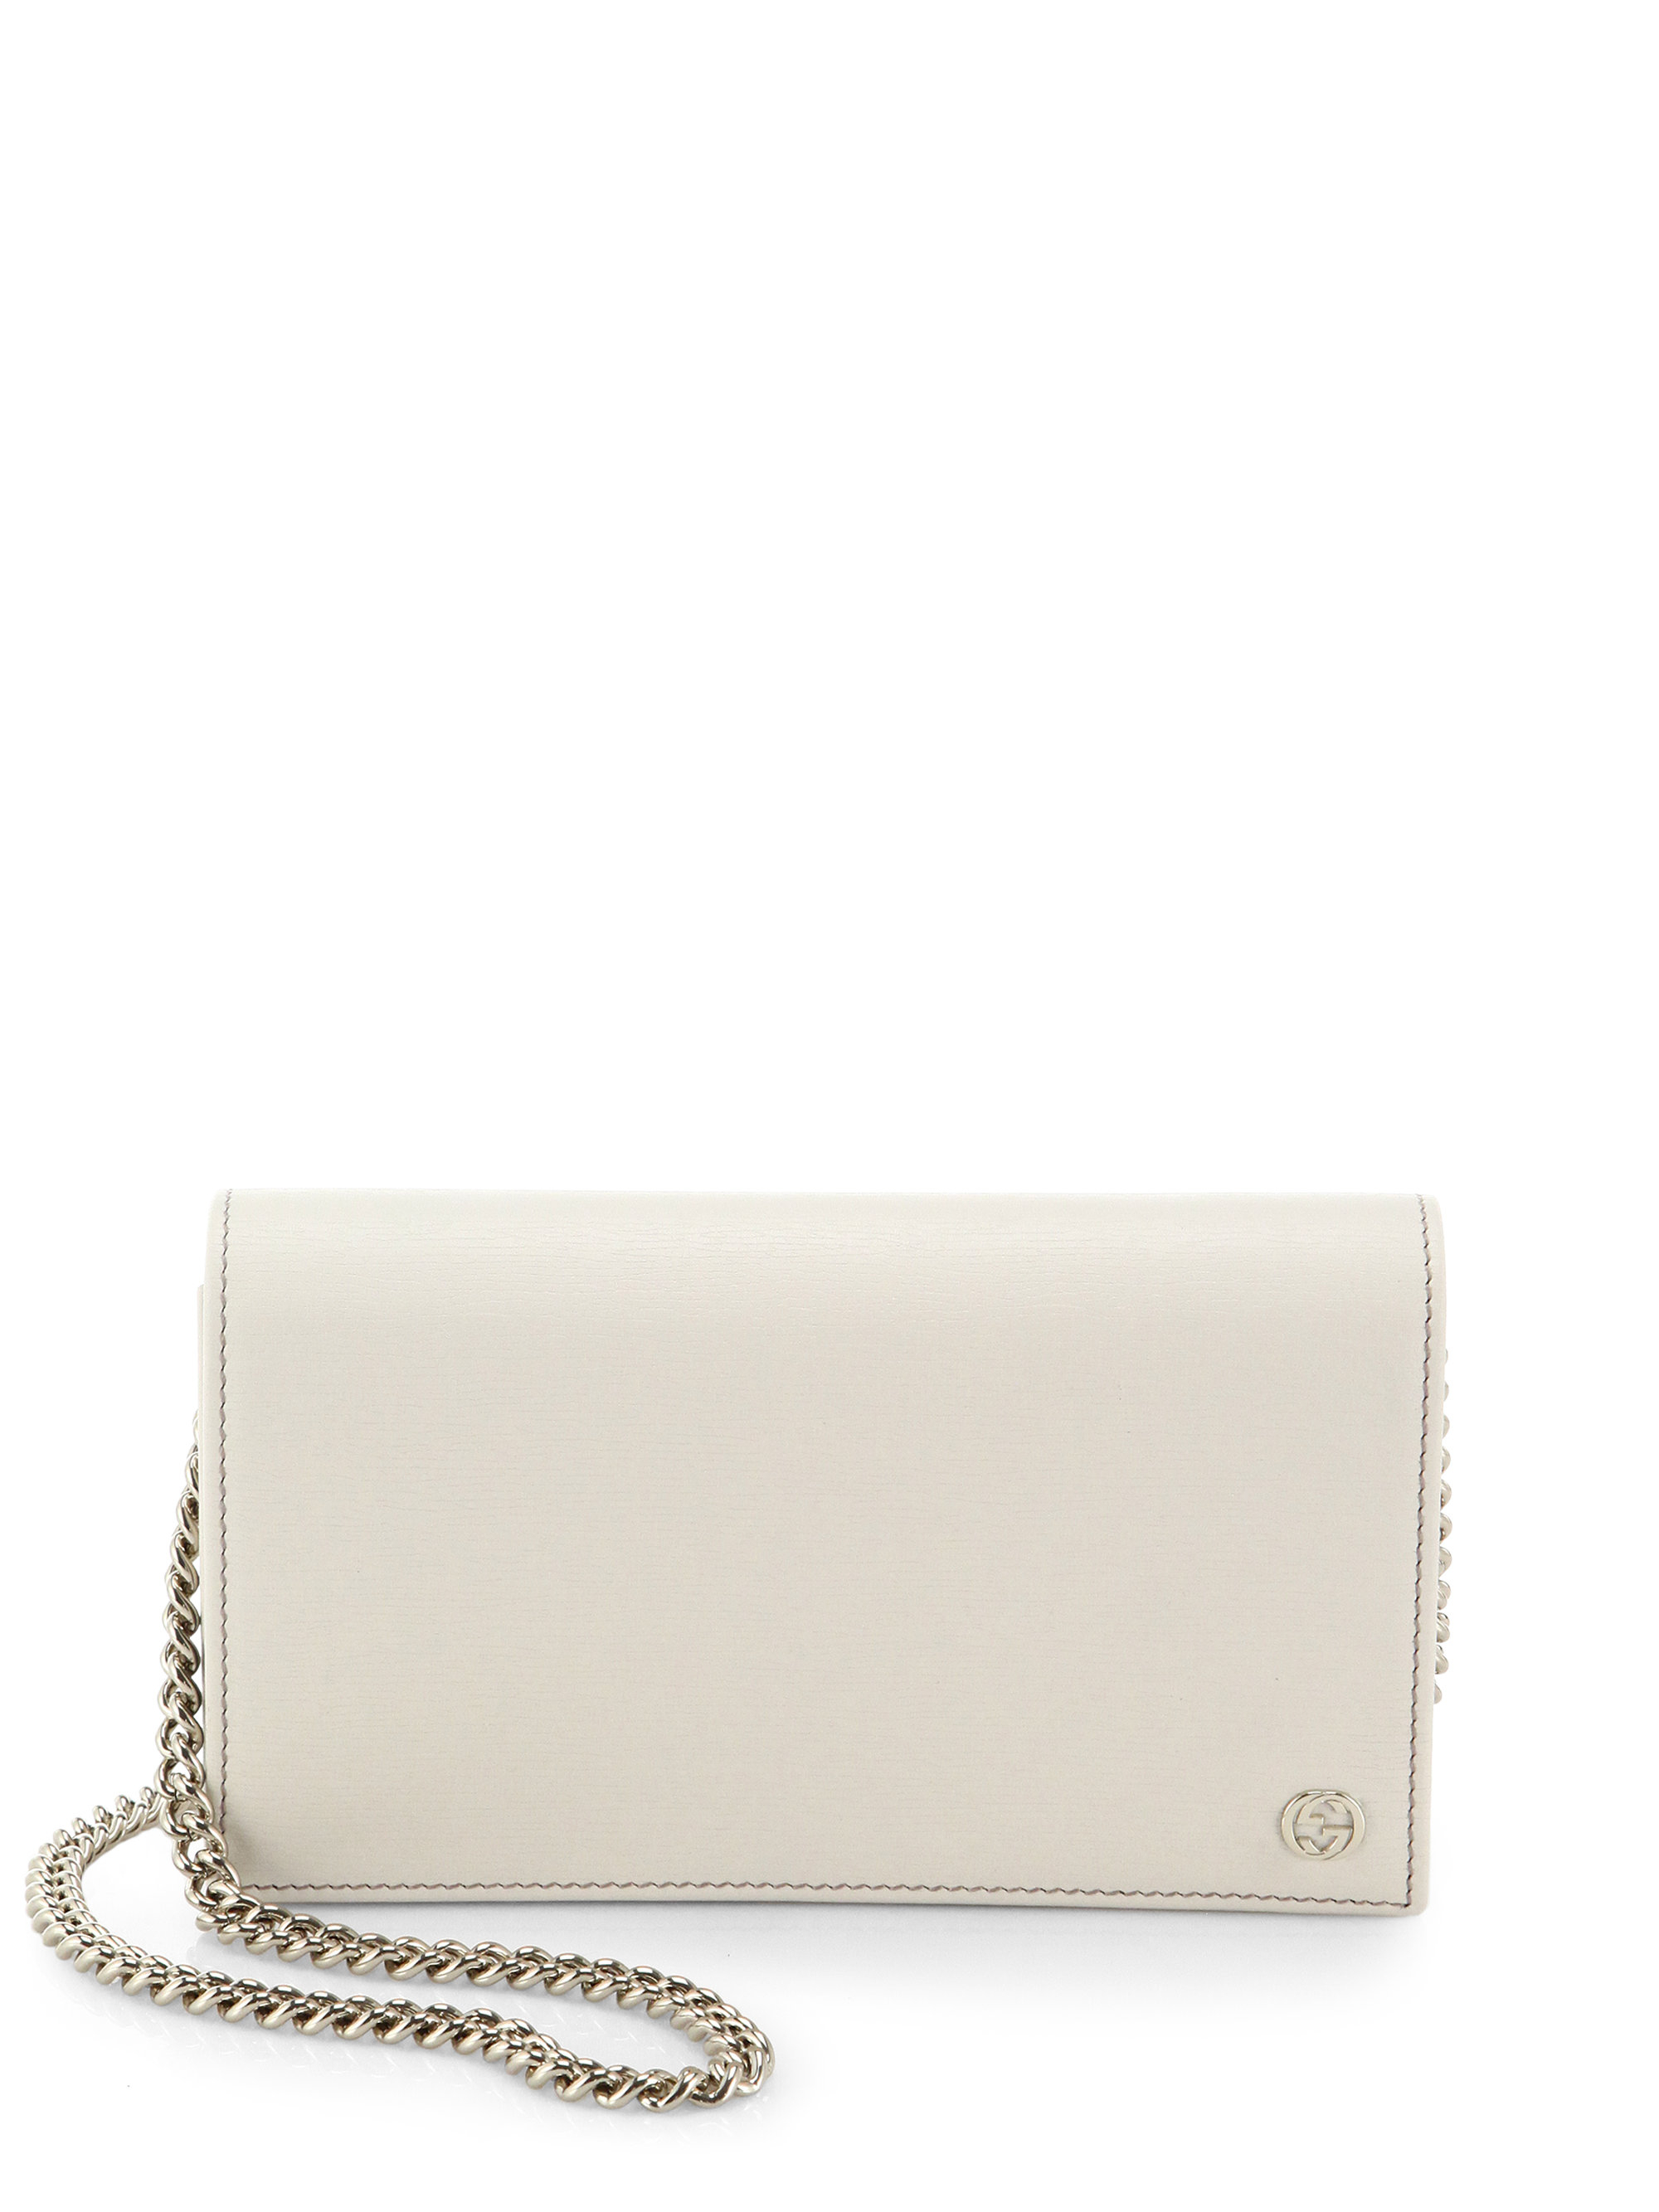 Gucci Leather Chain Wallet in White | Lyst